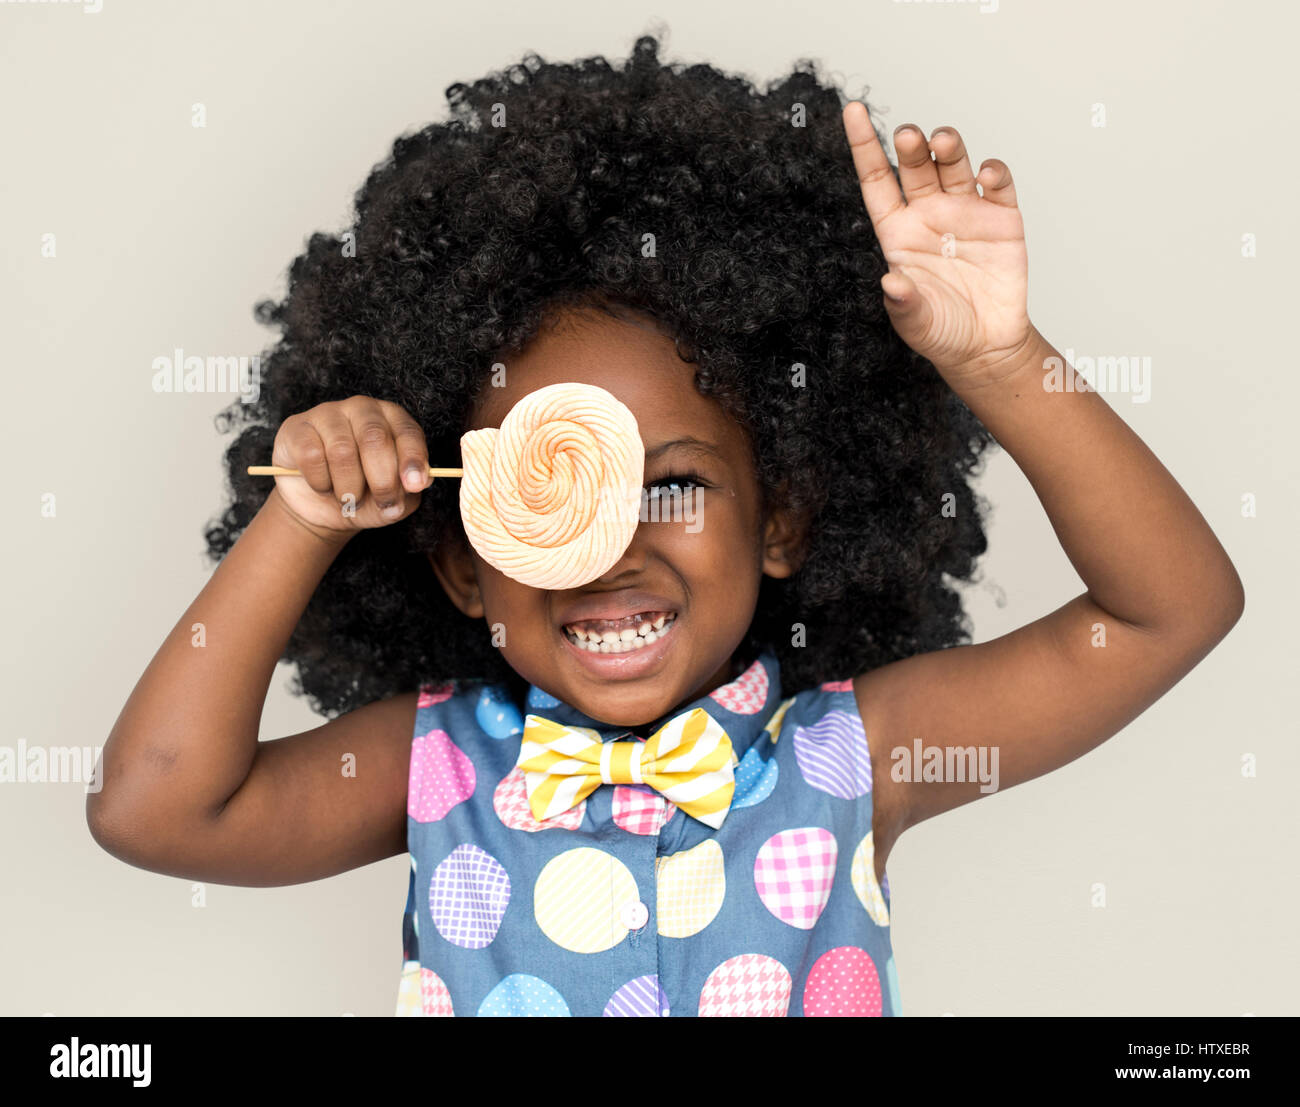 African Descent Child Lollipop Candy - Stock Image